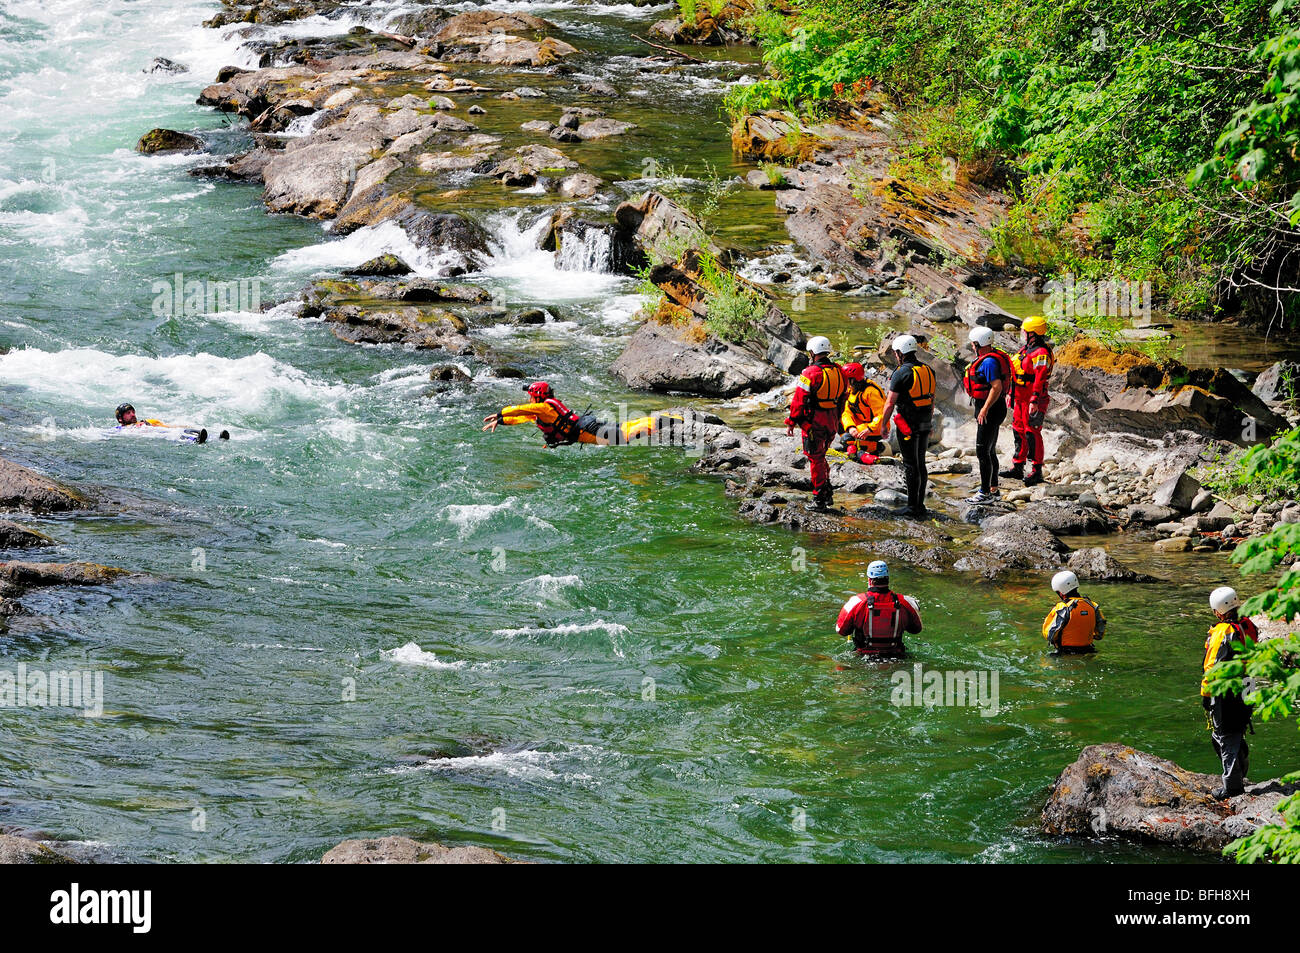 A Search and Rescue team training in the Cowichan River near Skutz Falls near Lake Cowichan, BC. - Stock Image